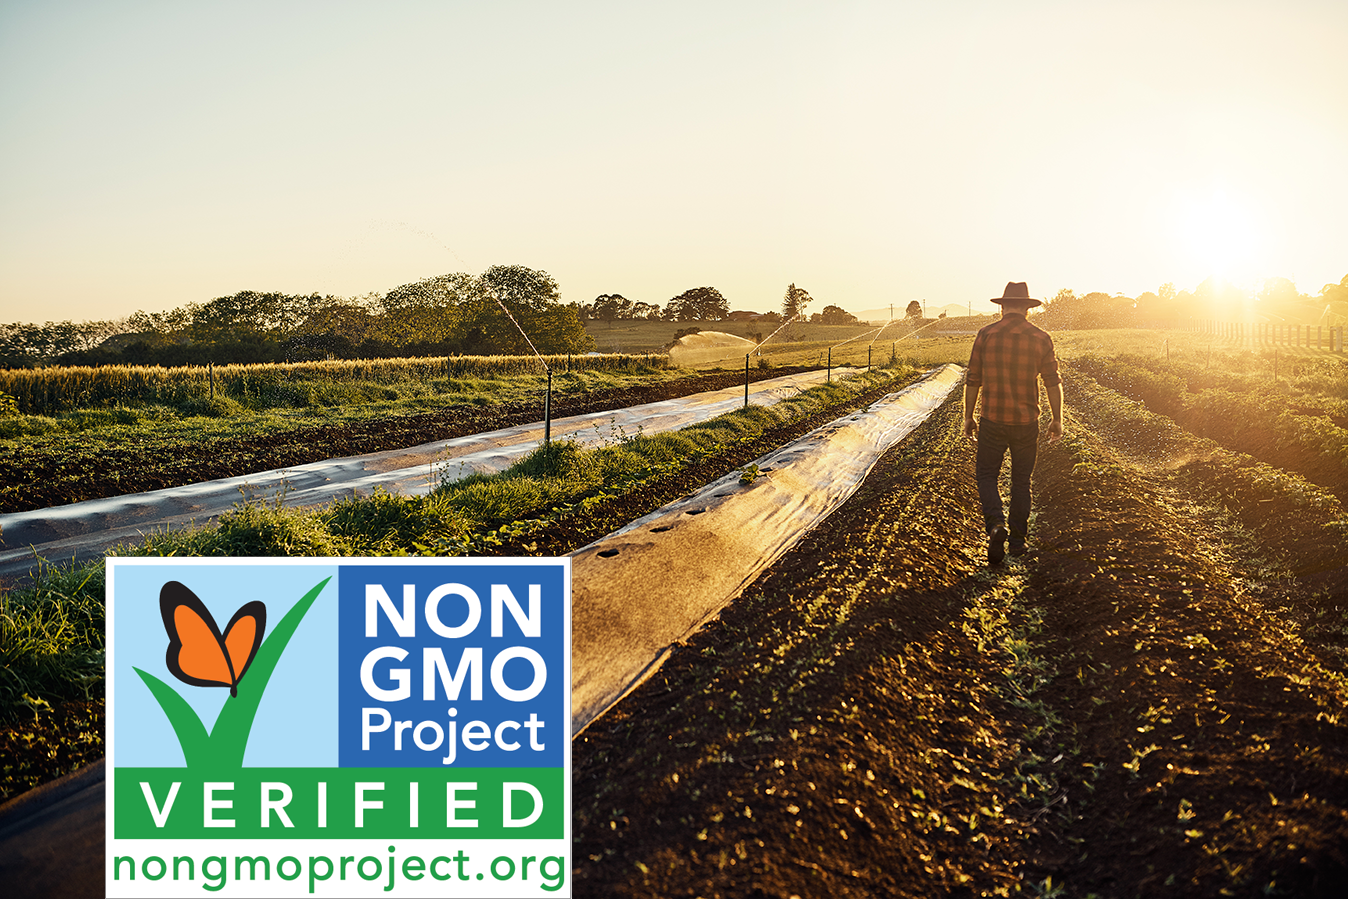 We're on a Mission to Say No to GMO's